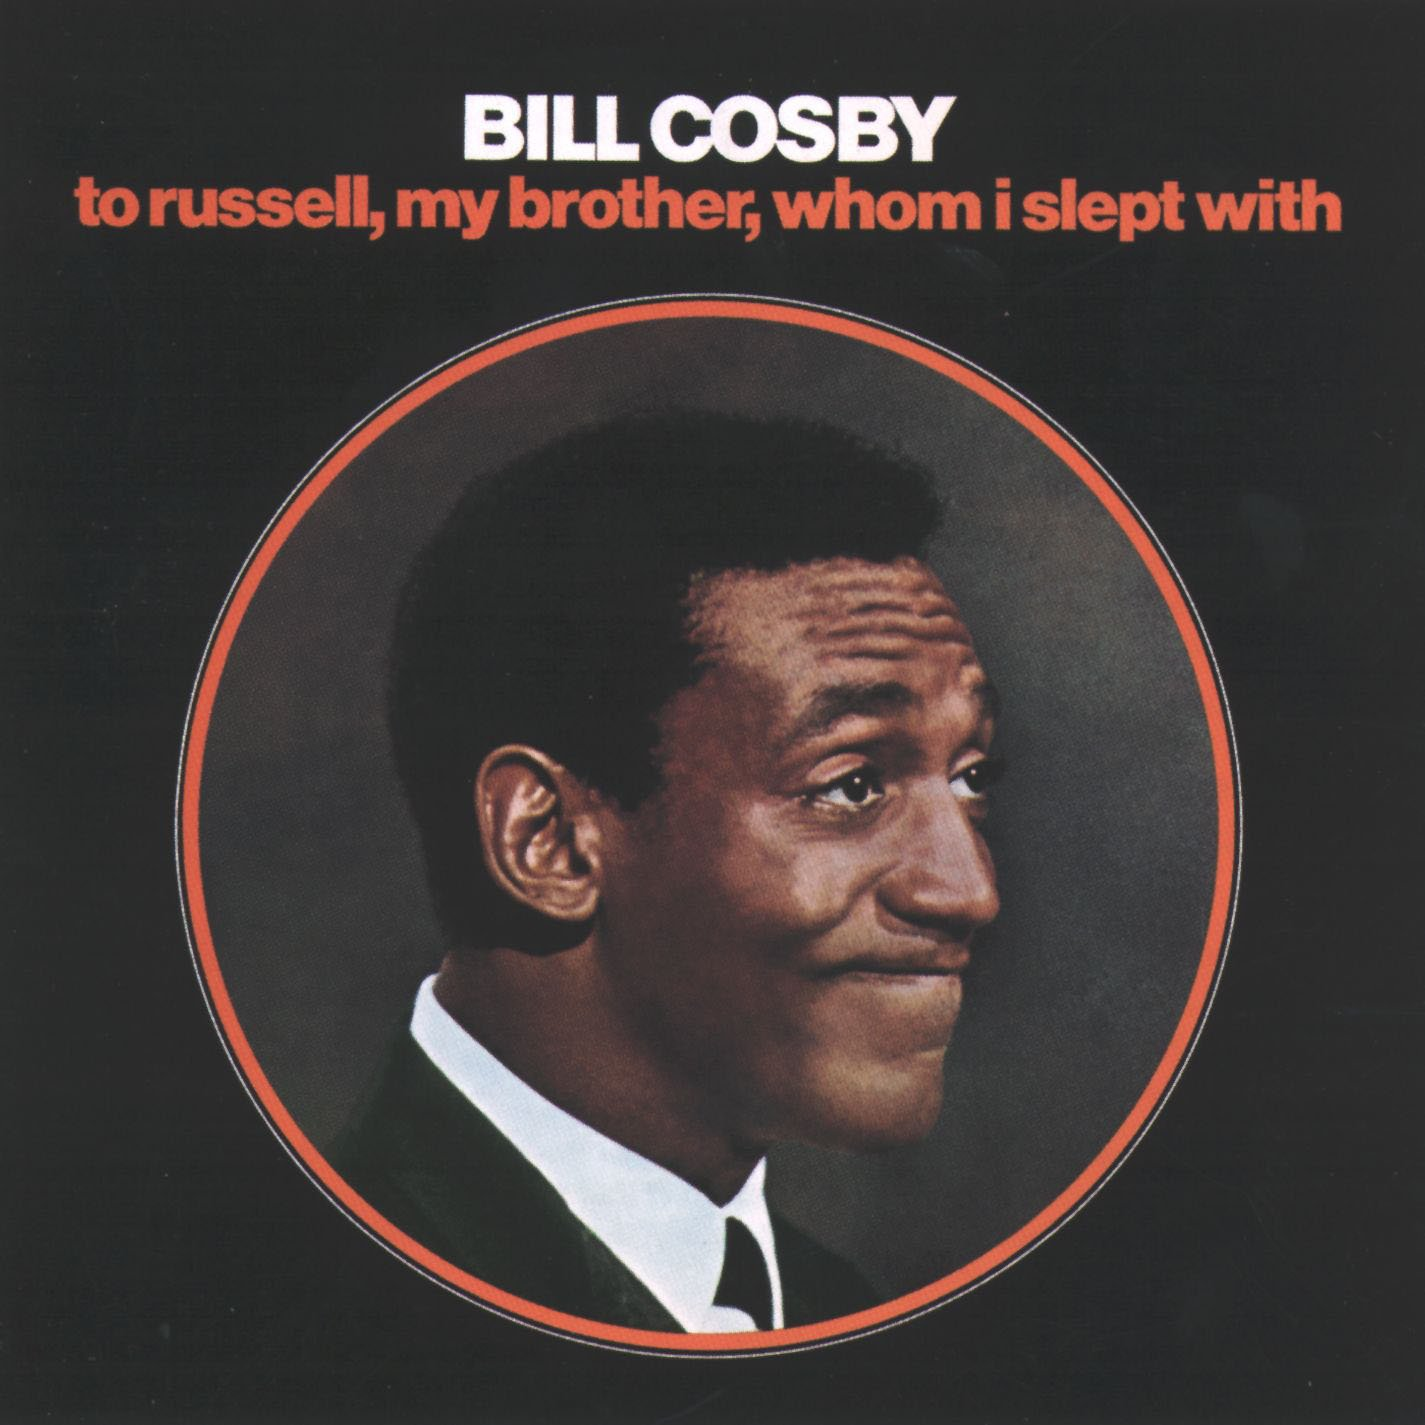 CD : Bill Cosby - To Russell, My Brother (CD)